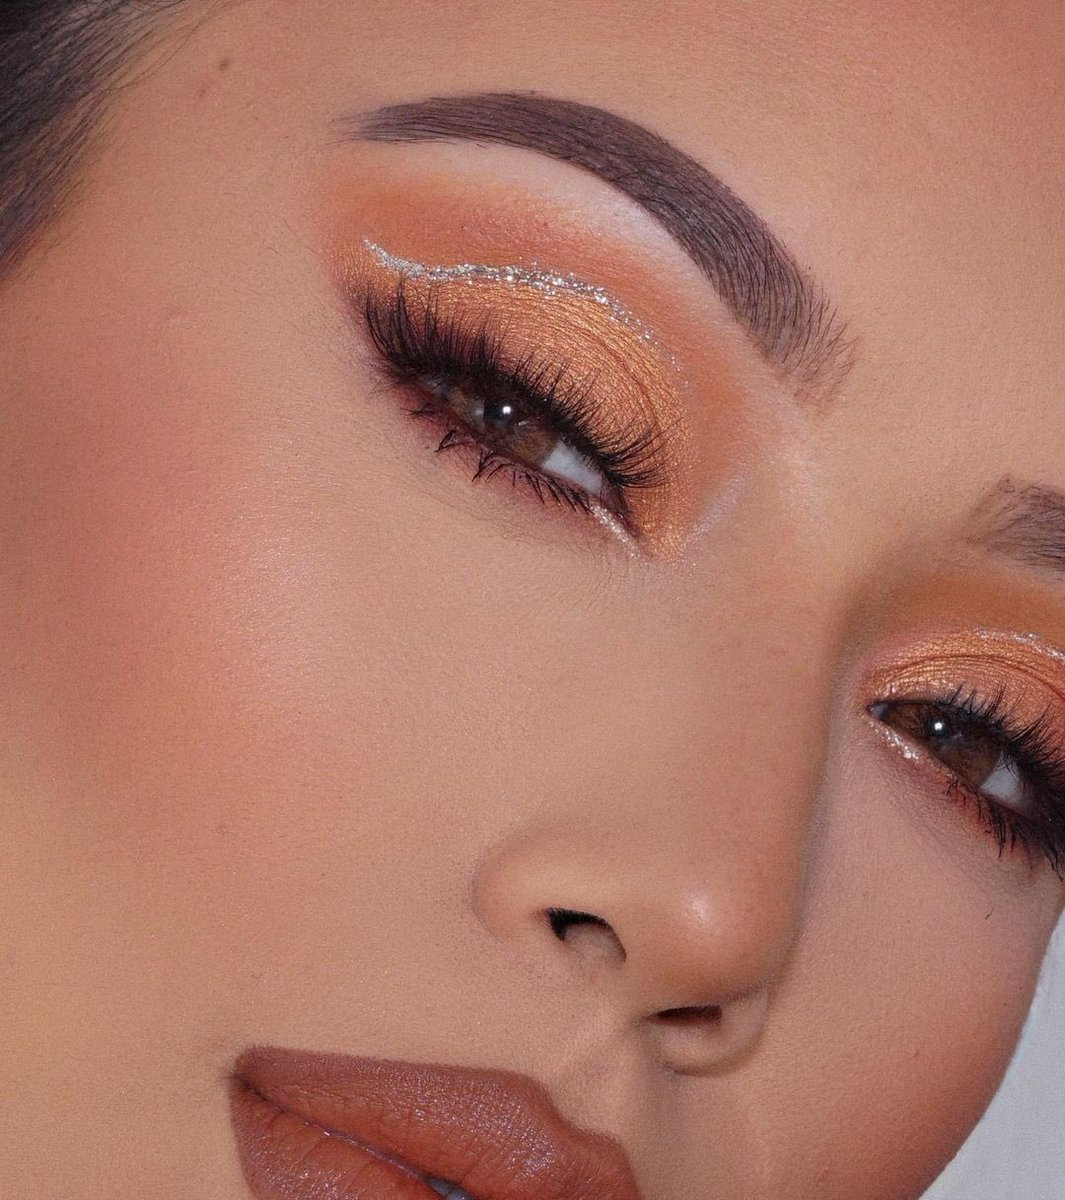 .@priscilla_fhern wearing tanned and gorgeous bronzer to complete this gorgeous peachy makeup look! 🤎✨